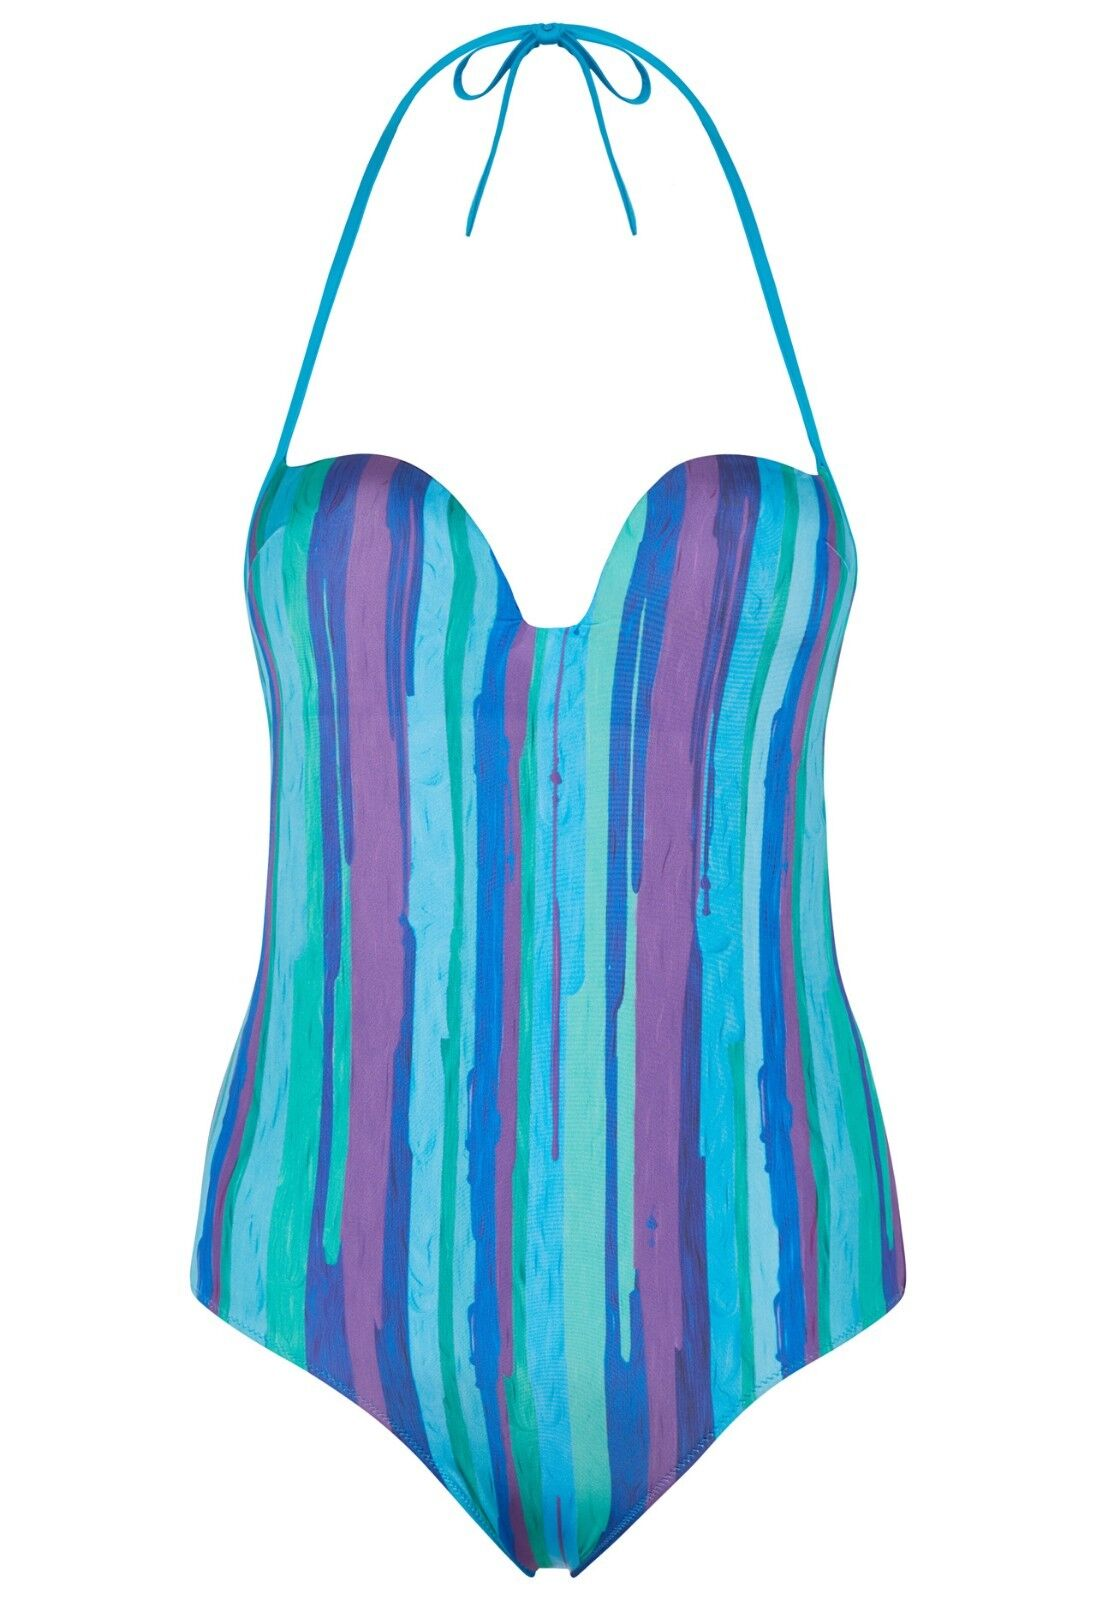 335 NEW LA PERLA Summer Stripe Padded Swimsuit bluee Green Purple US 36 C IT 3 C